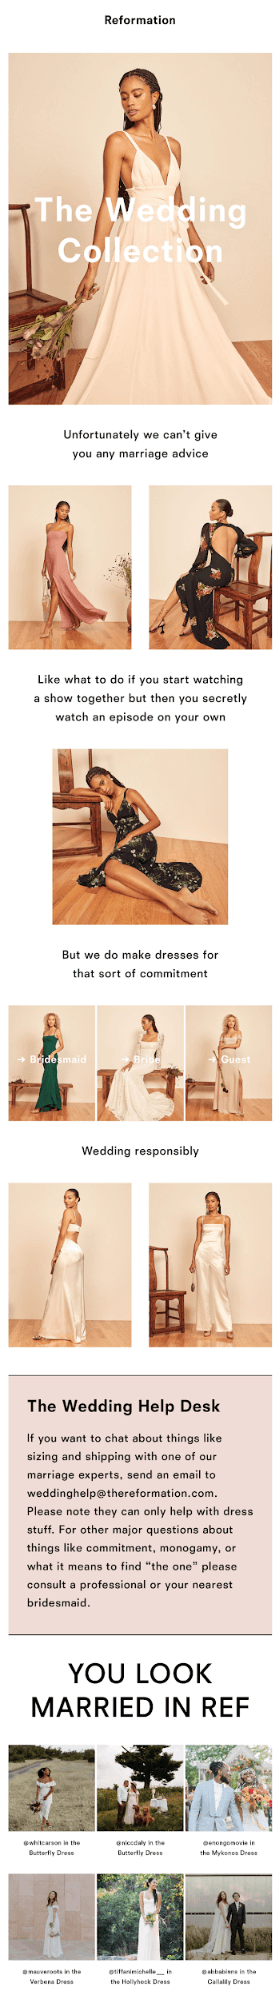 Best examples of user-generated content in emails